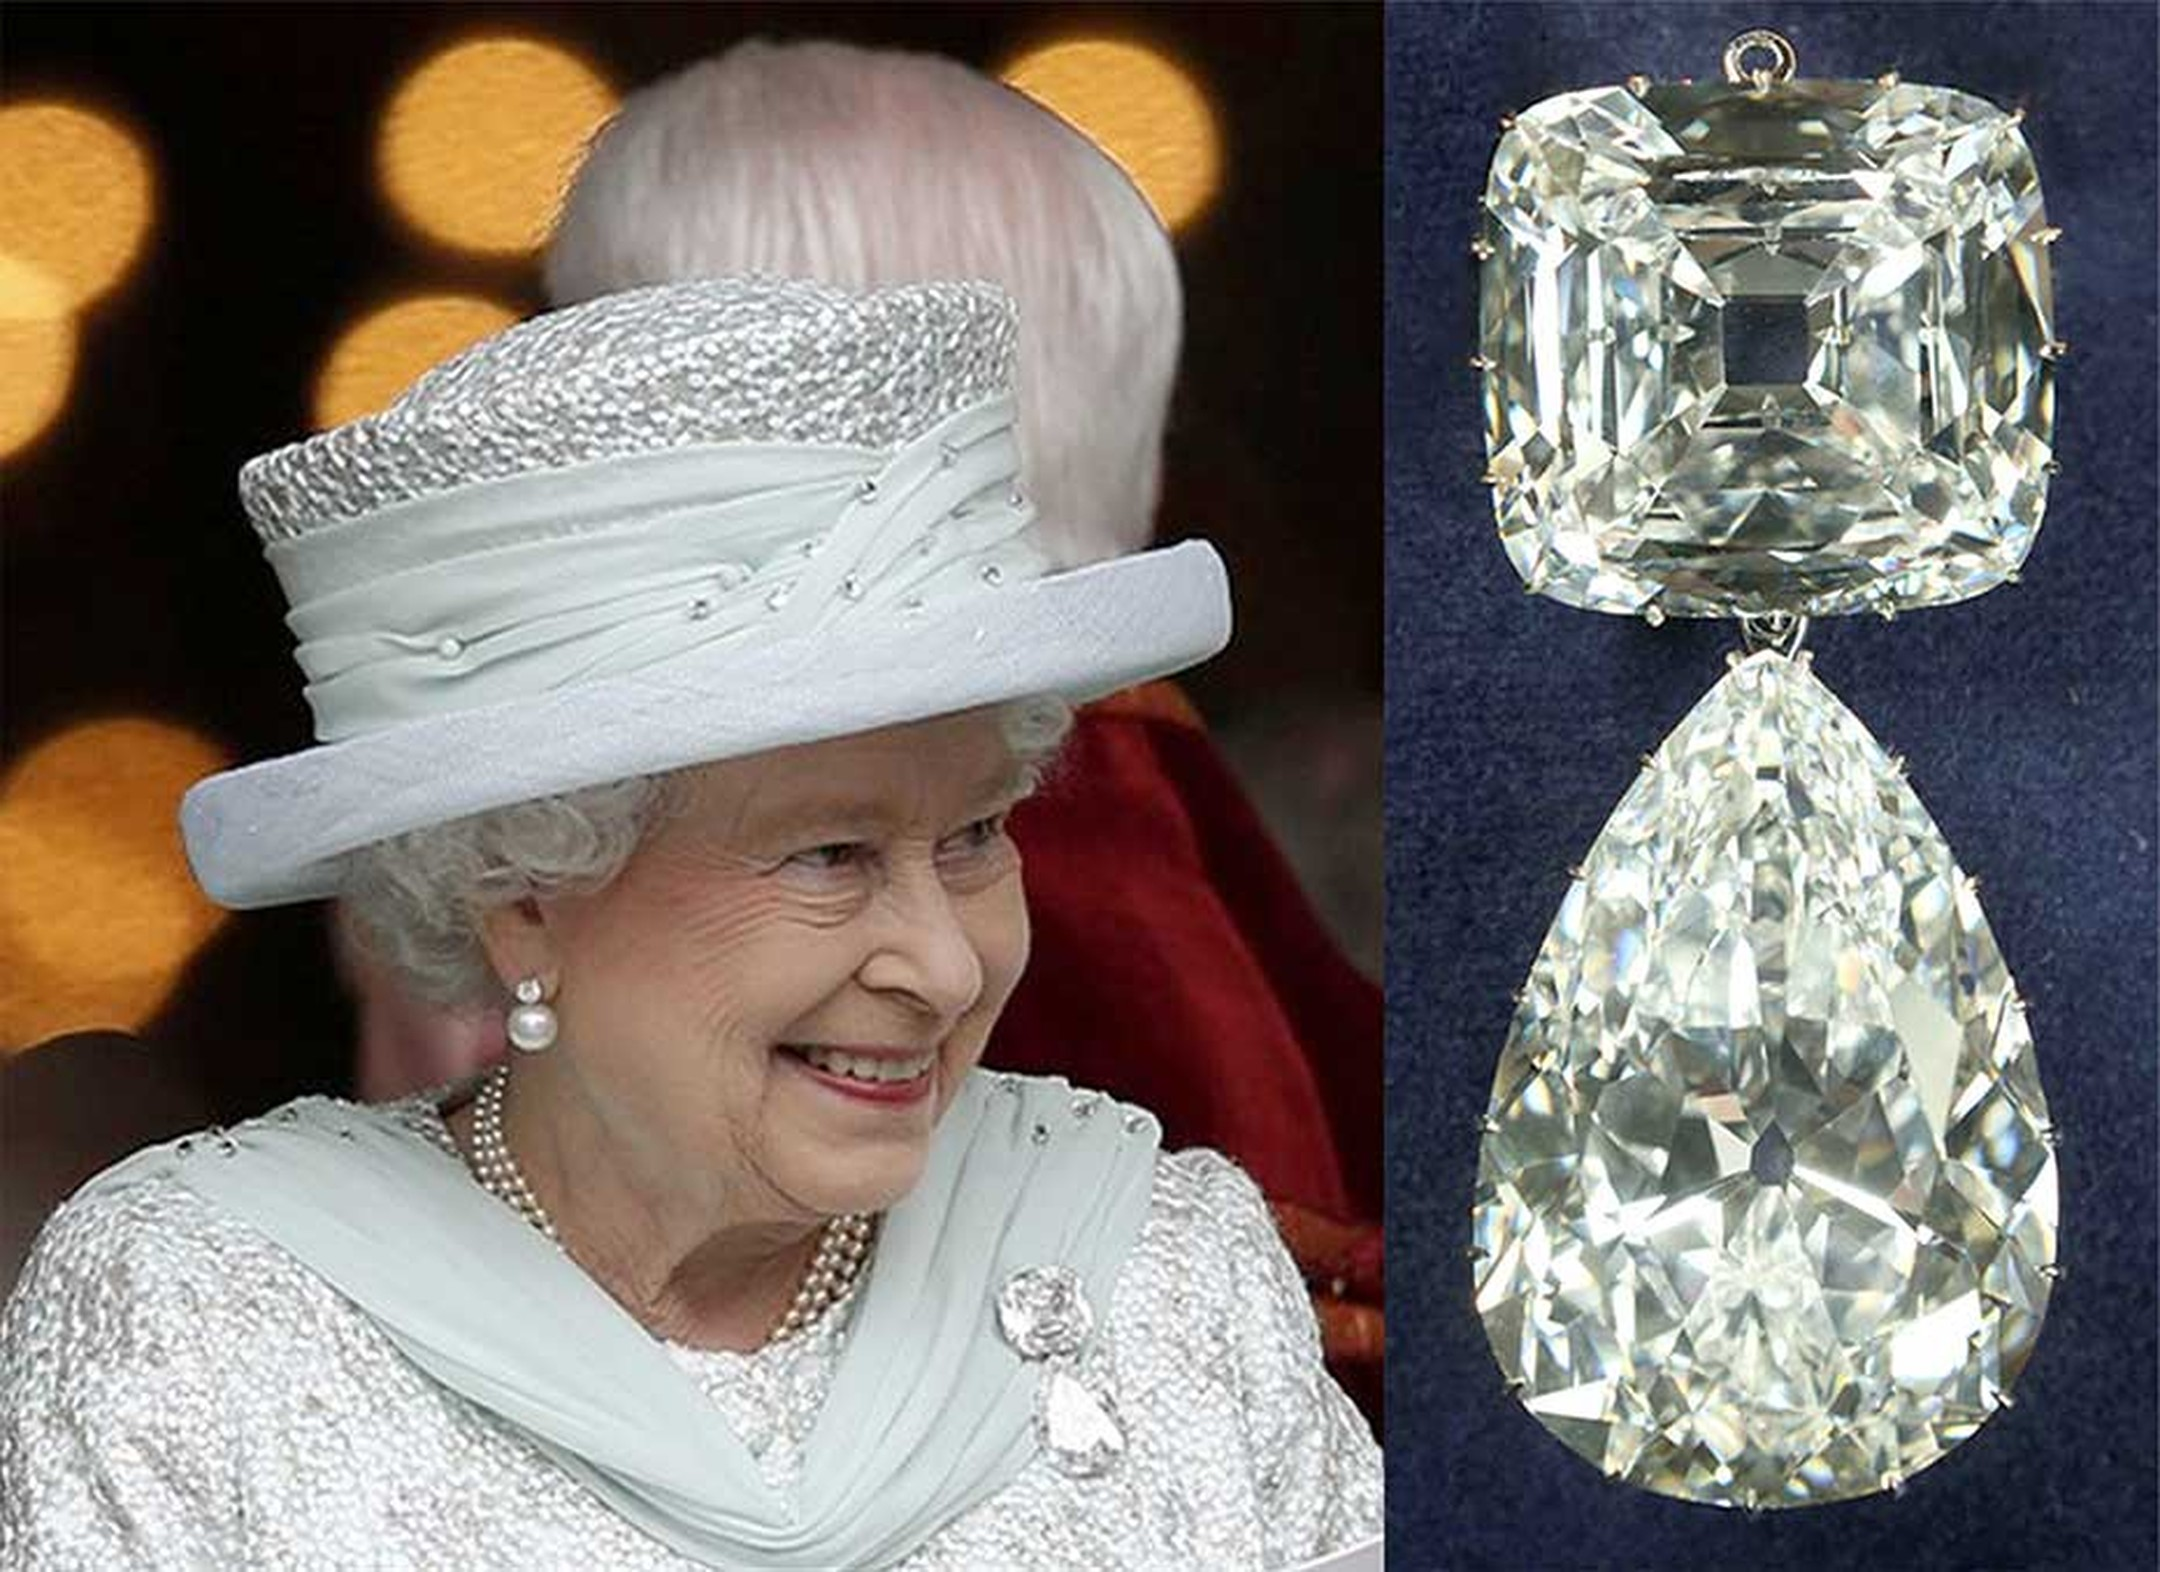 Cullinan IV, a 63.6 ct Asscher-cut diamond cut from the famous 3106.75ct Cullinan diamond - the largest uncut gem-quality diamond ever found - sits at the top of a royal brooch, which was worn by Queen Mary before being passed down to Queen Elizabeth, pic